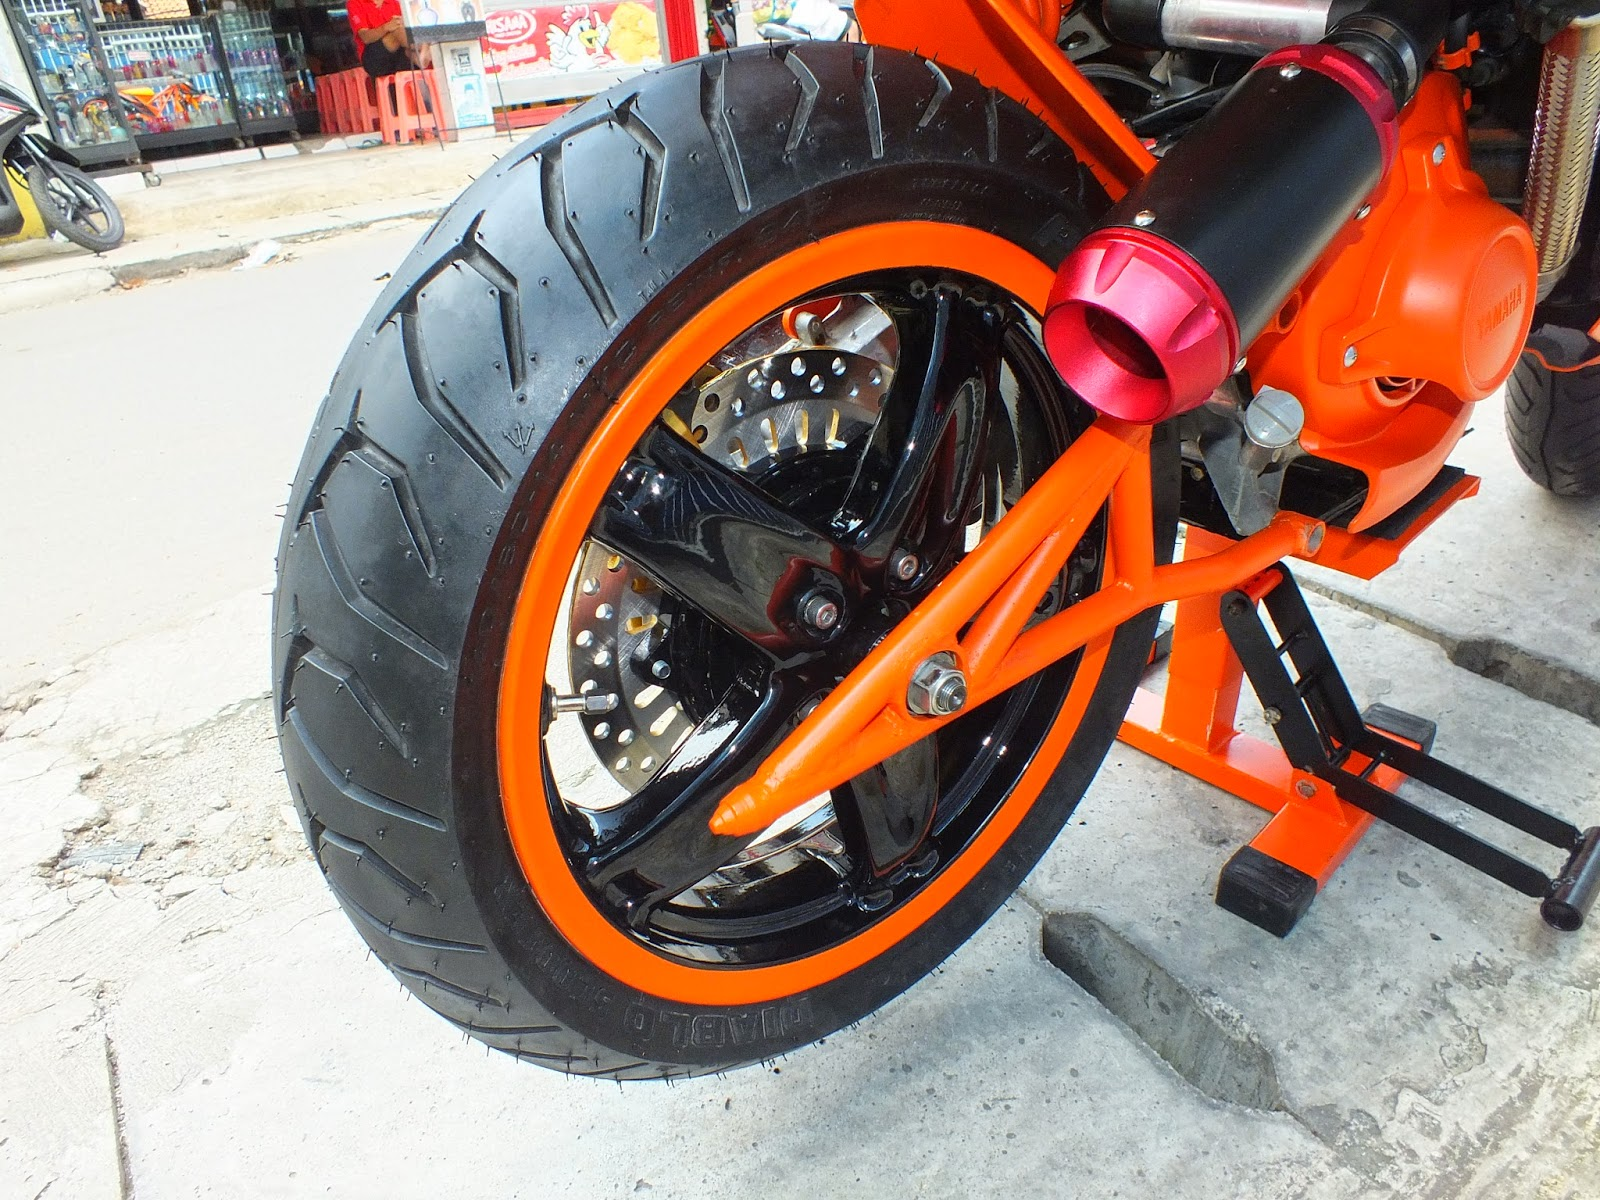 84 Modifikasi Filter Udara Scoopy Kumpulan Modifikasi Motor Scoopy